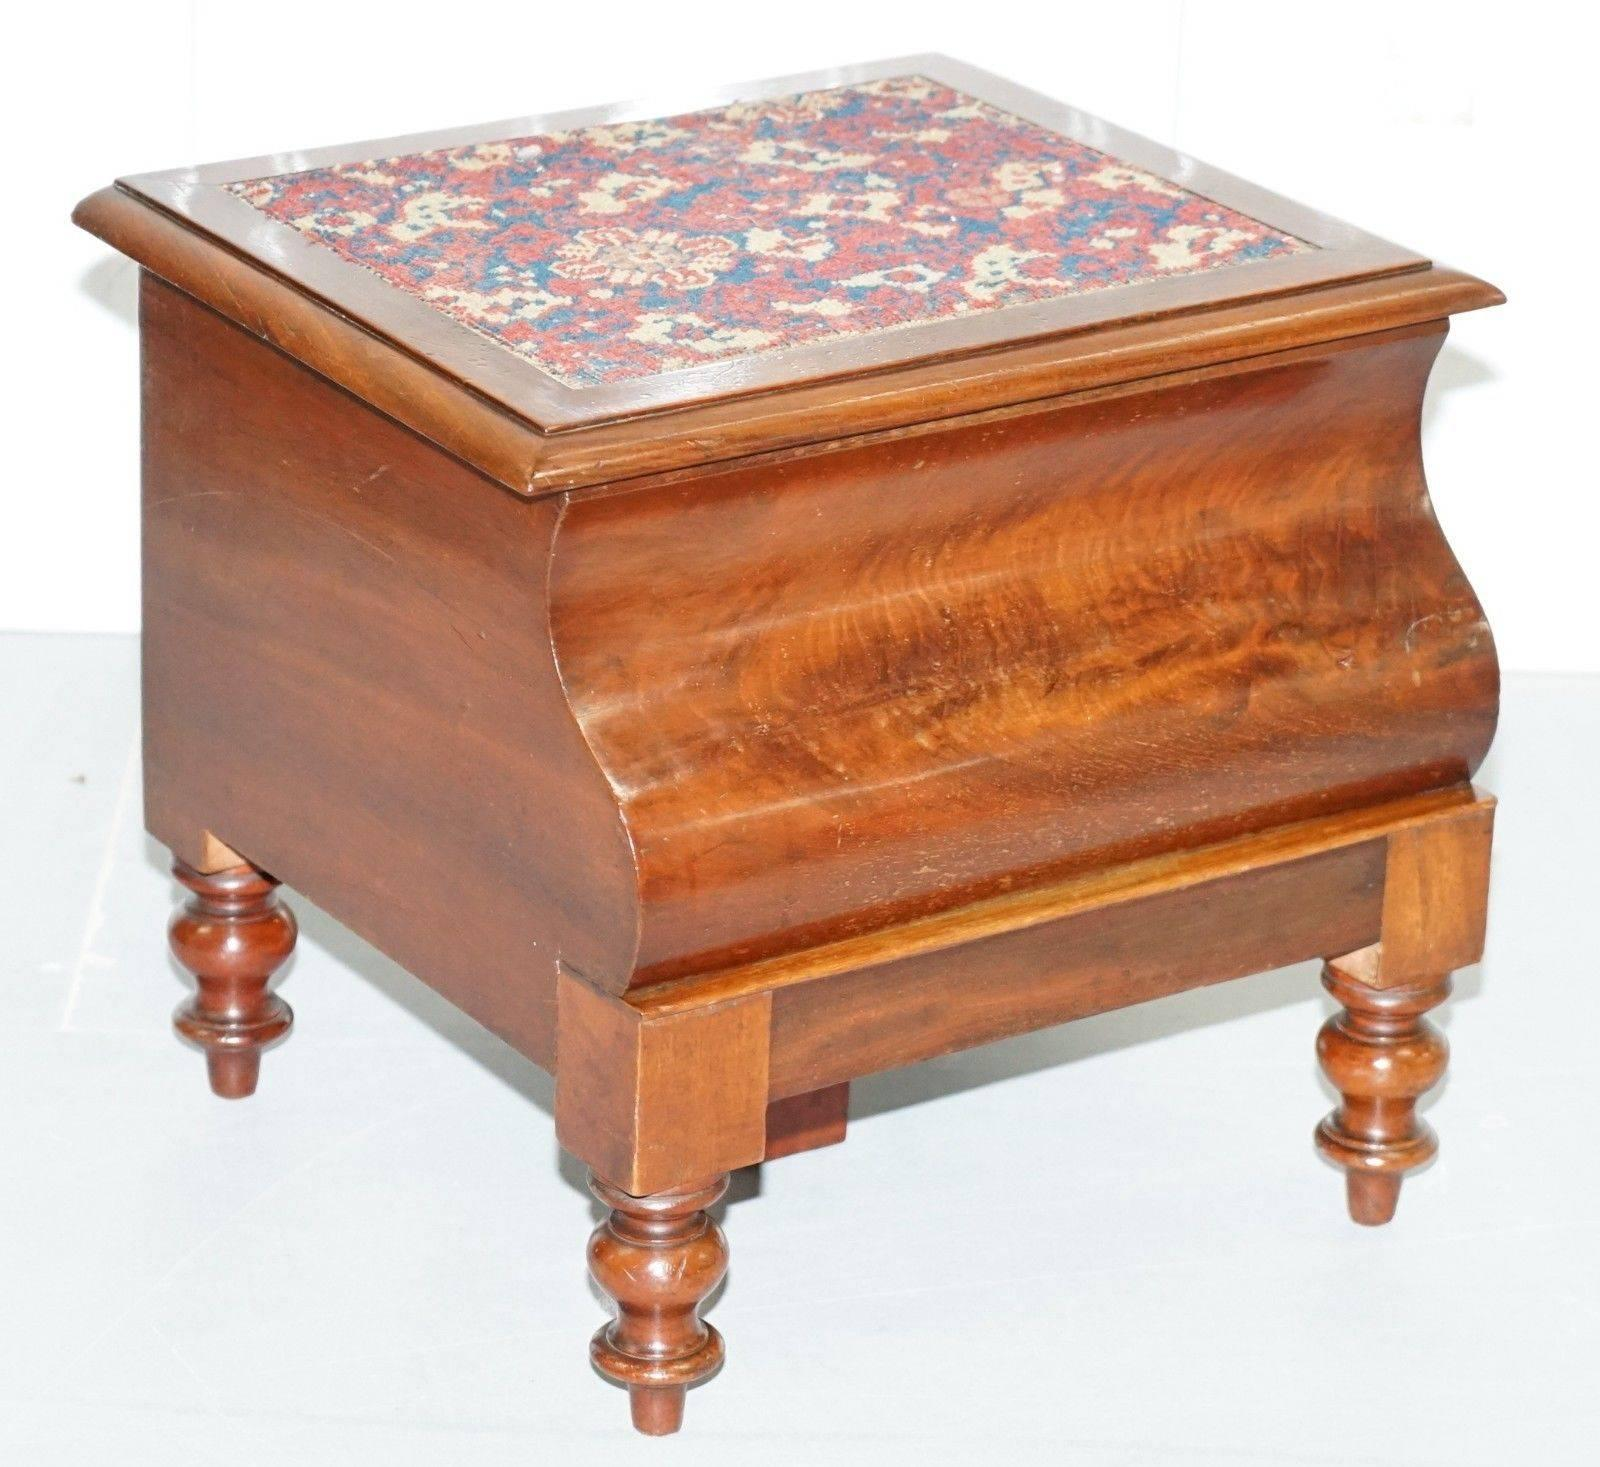 Merveilleux Rare Fully Complete Victorian American Bed Step Stool With Built In Chamber  Pot For Sale At 1stdibs